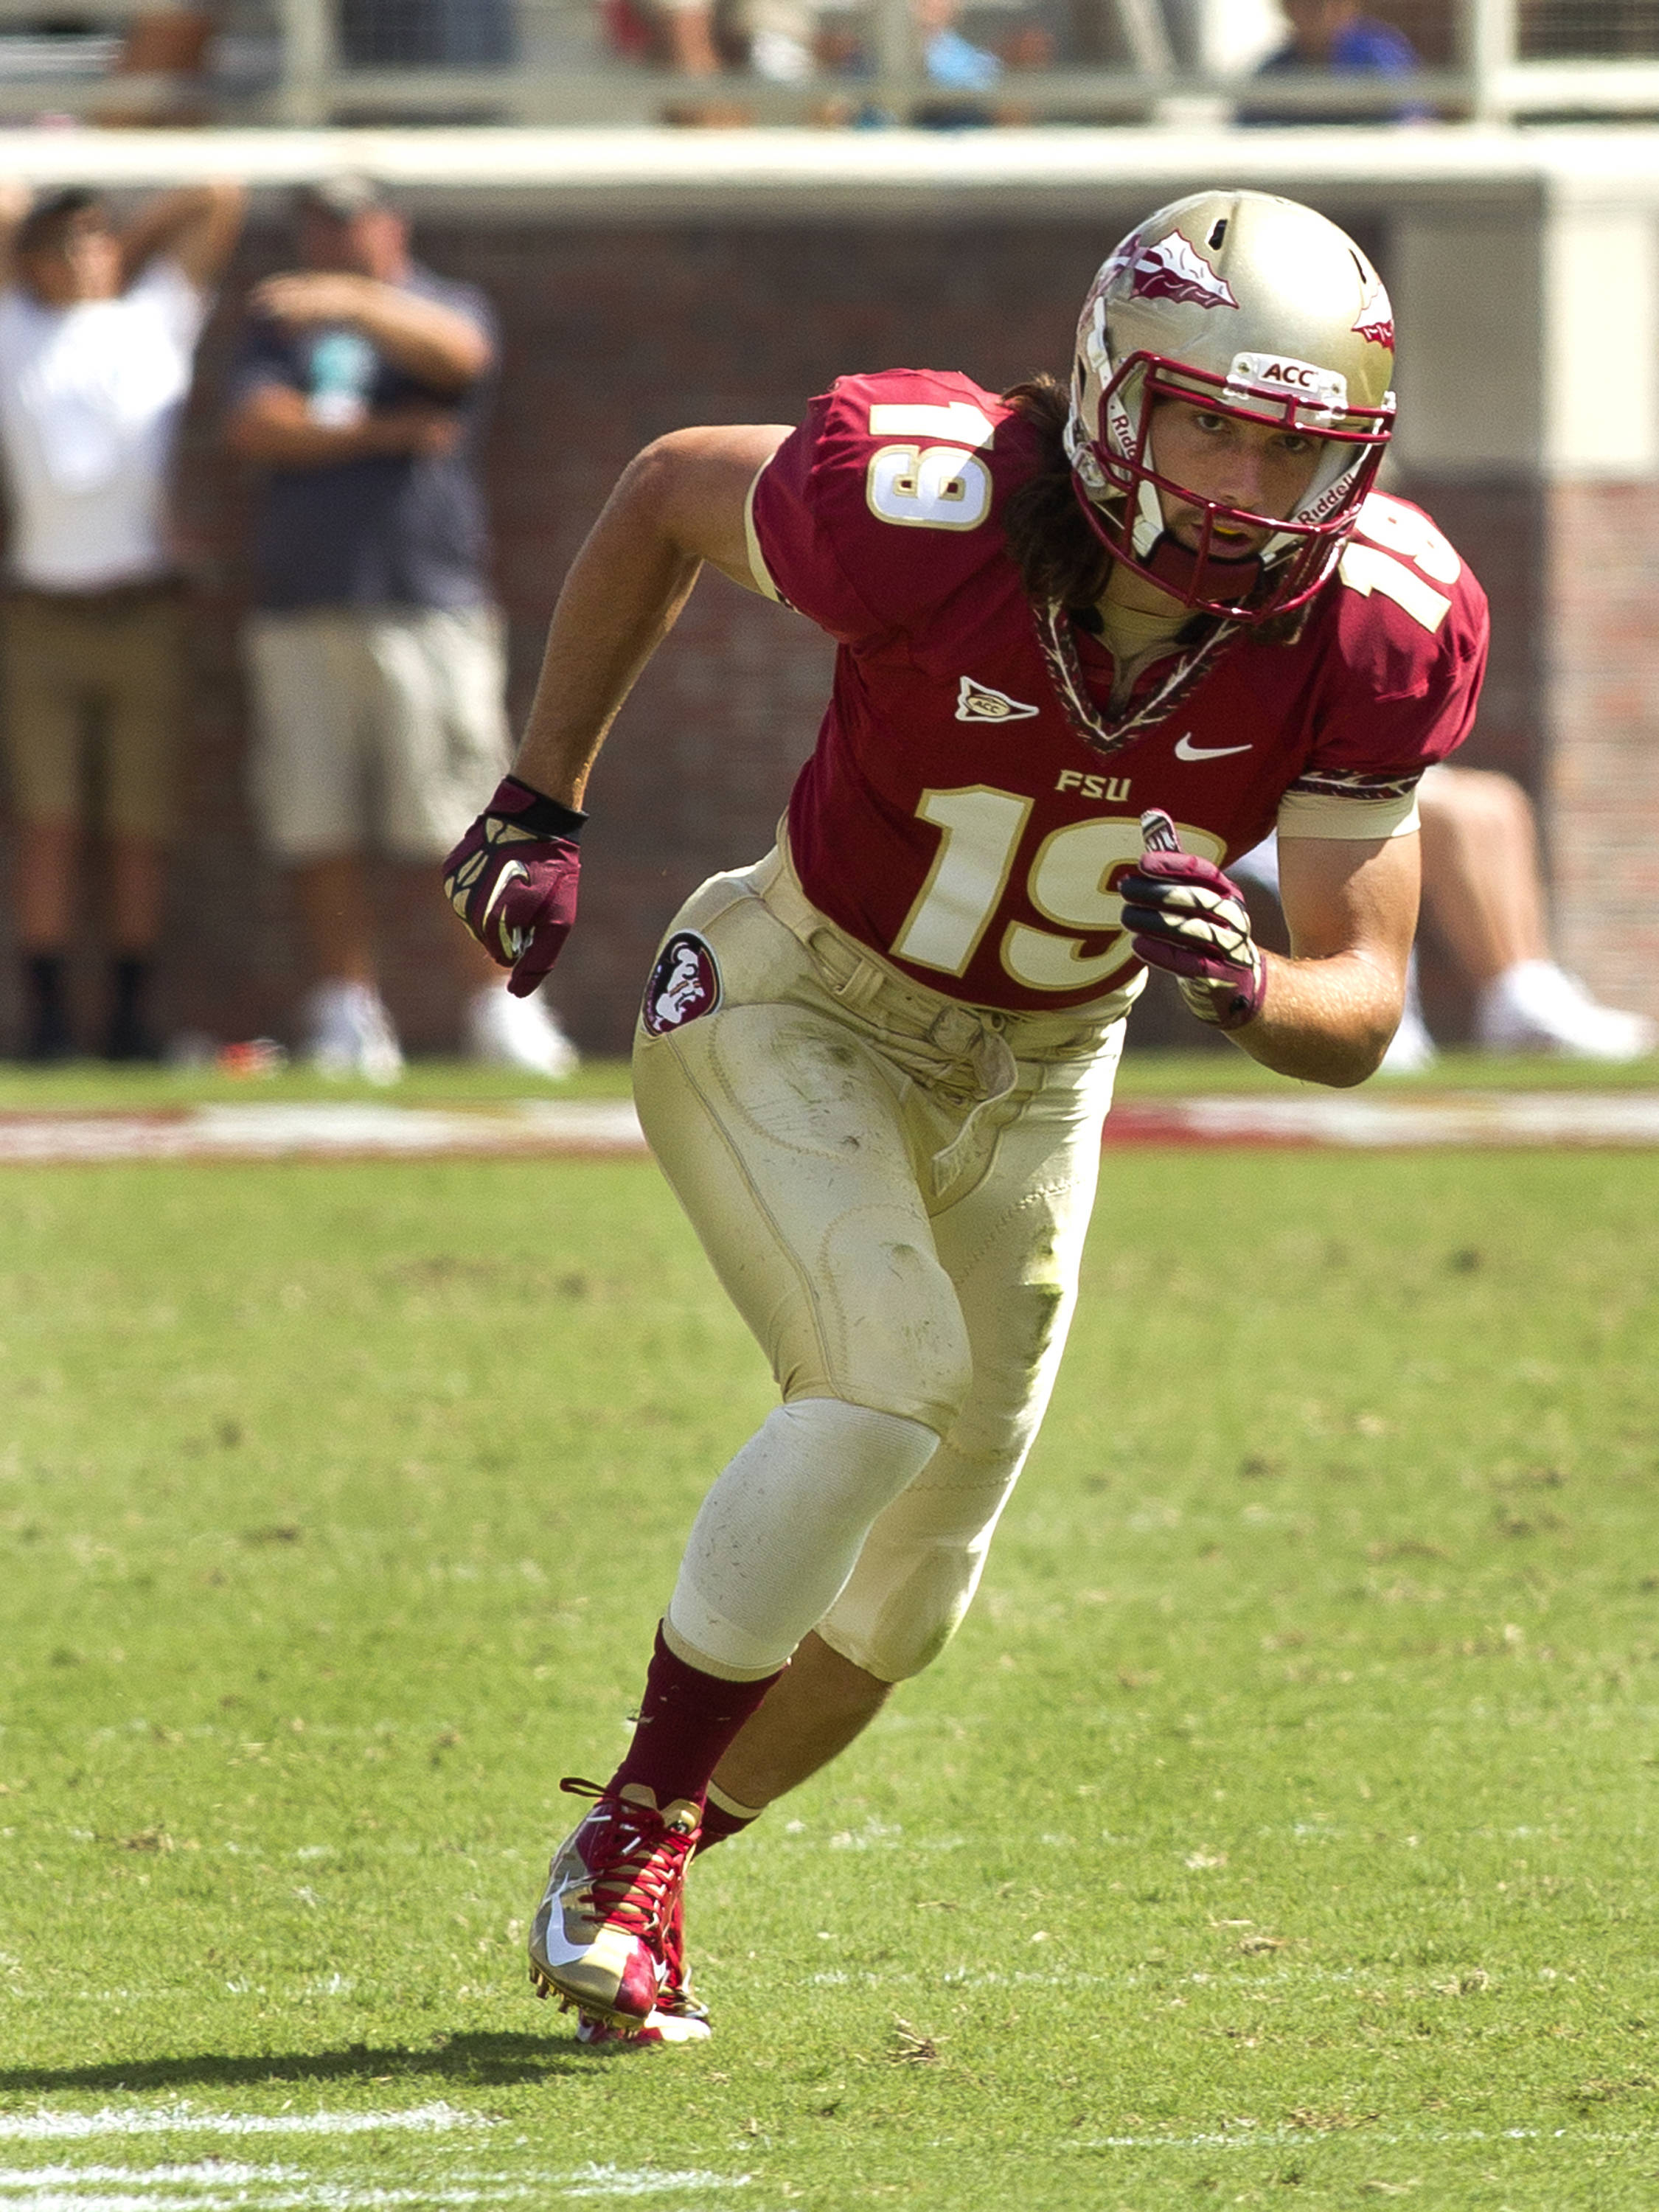 Josh Gehres (19) starting to run his route, FSU vs Wake Forest, 9/15/12 (Photo by Steve Musco)